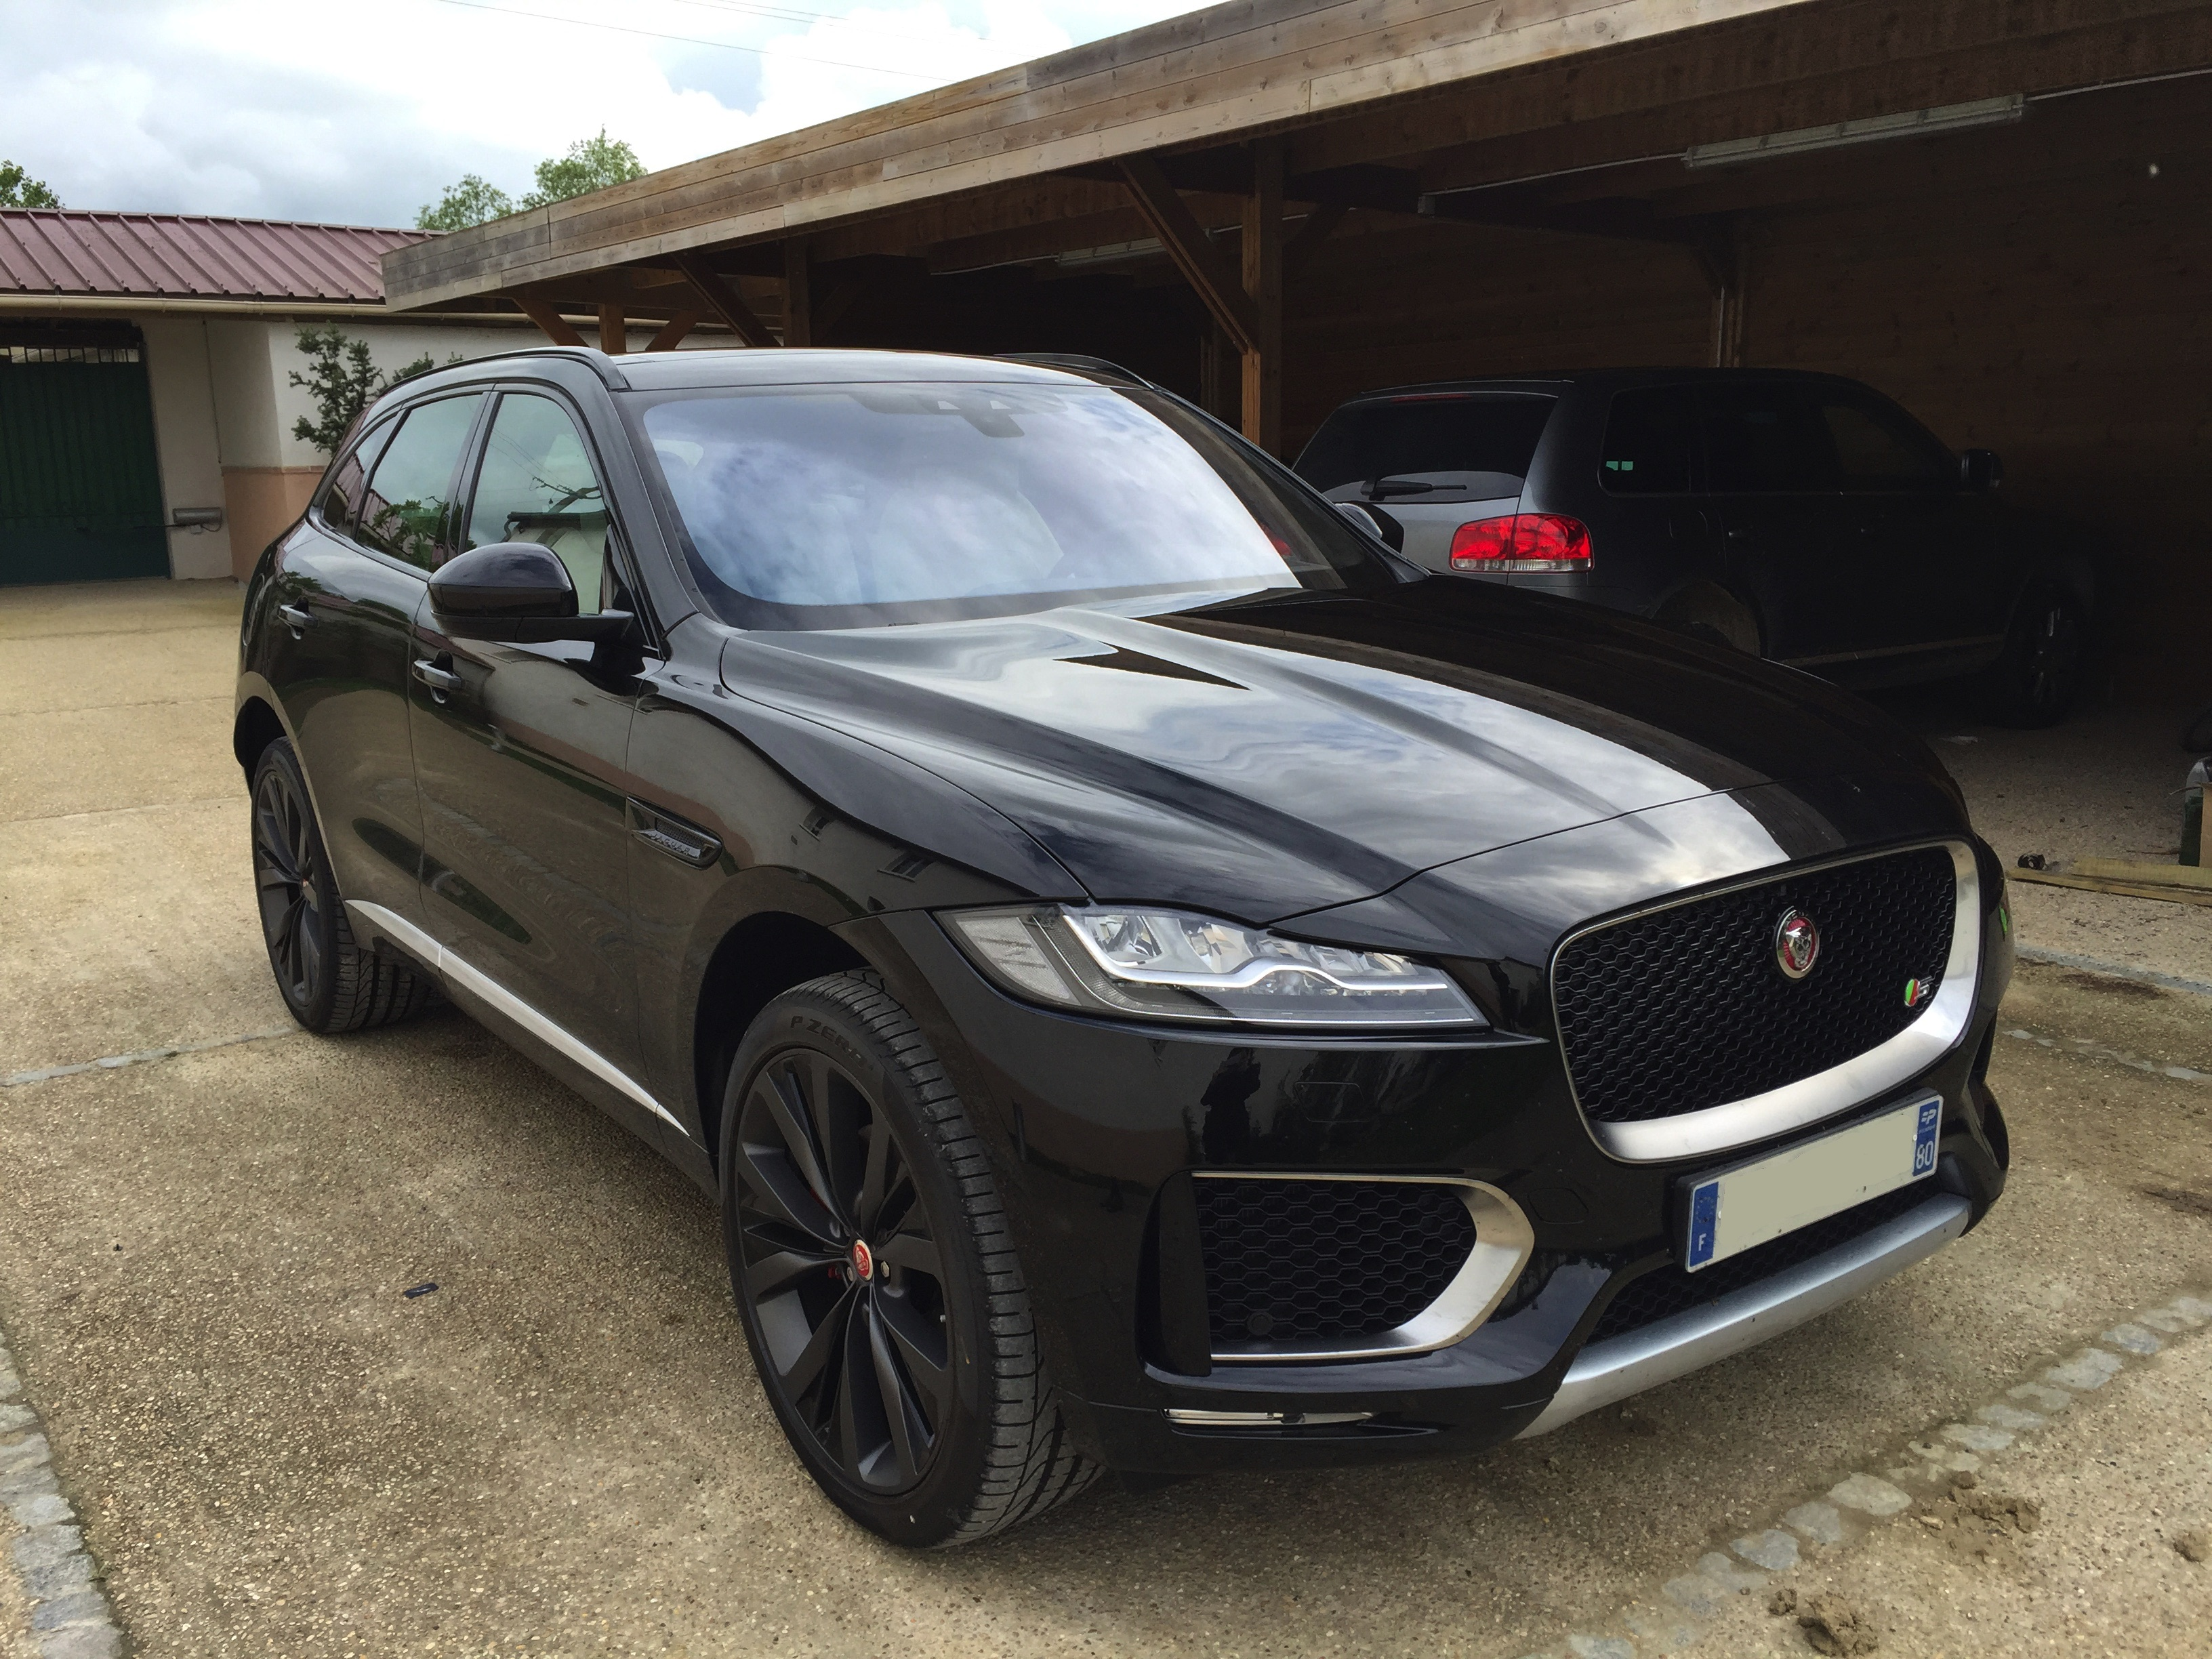 jaguar f pace v6 3 0d 300ch premi re edition 4x4 bva8. Black Bedroom Furniture Sets. Home Design Ideas